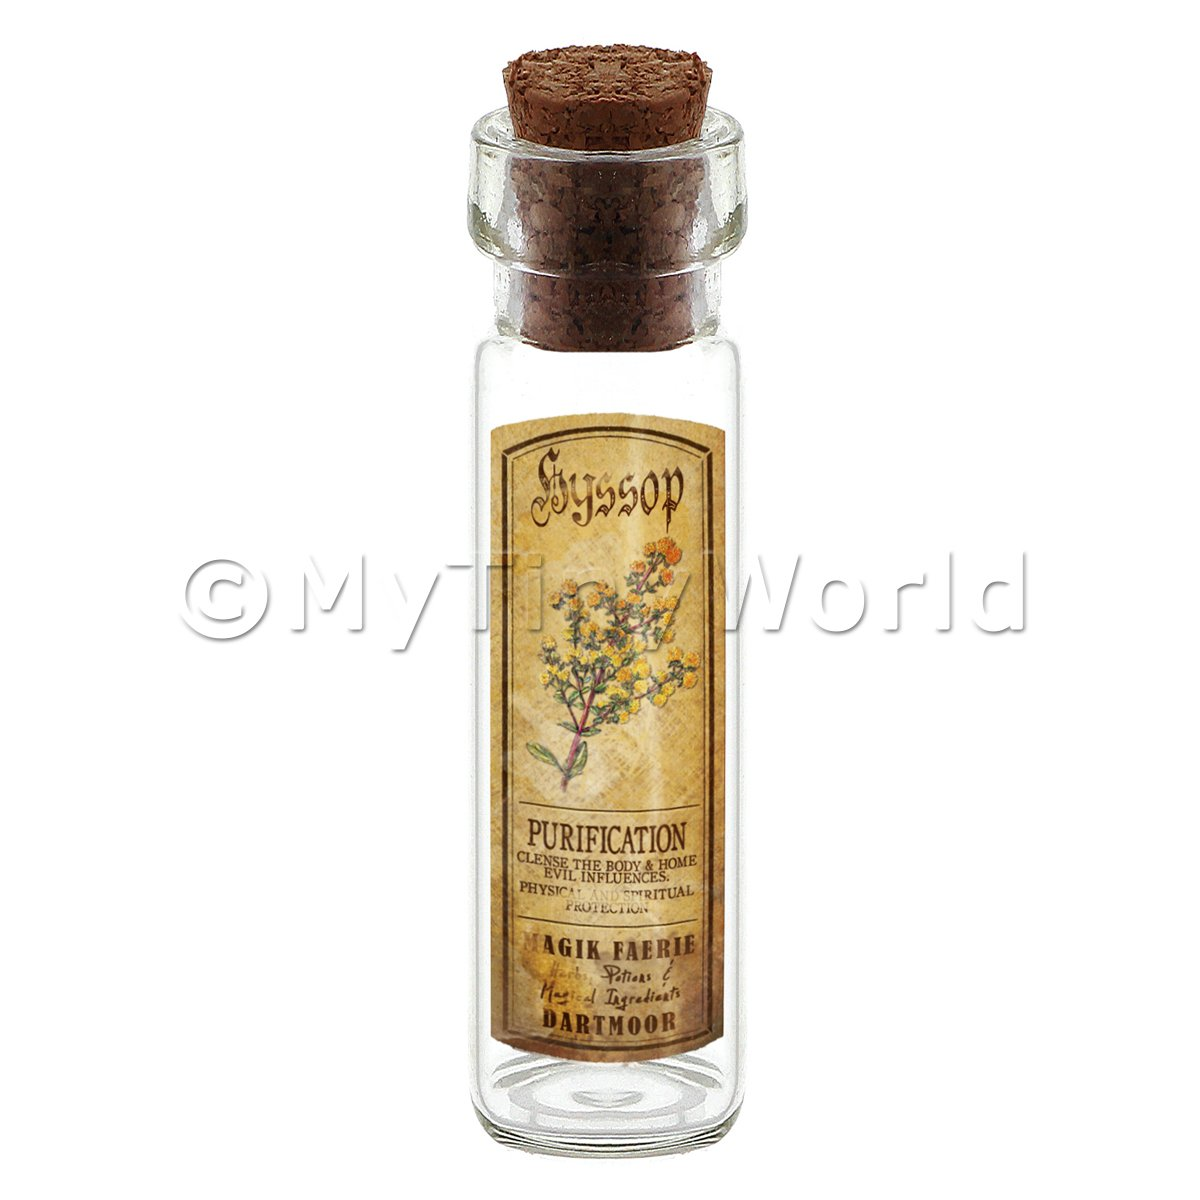 Dolls House Apothecary Hyssop Herb Long Colour Label And Bottle